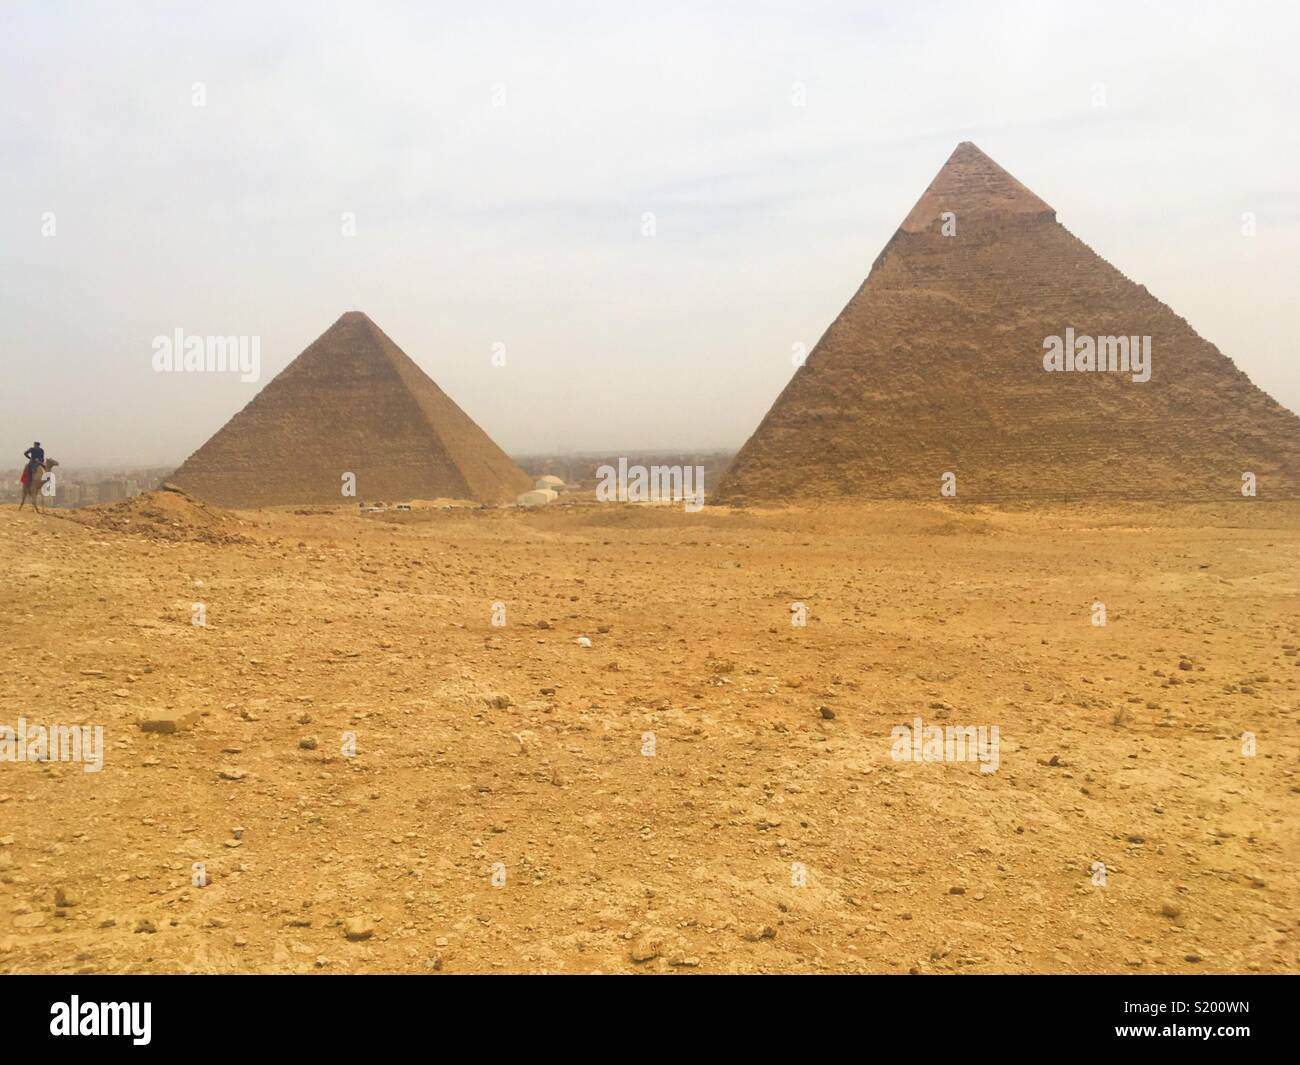 Pyramids of Giza, Egypt - Stock Image